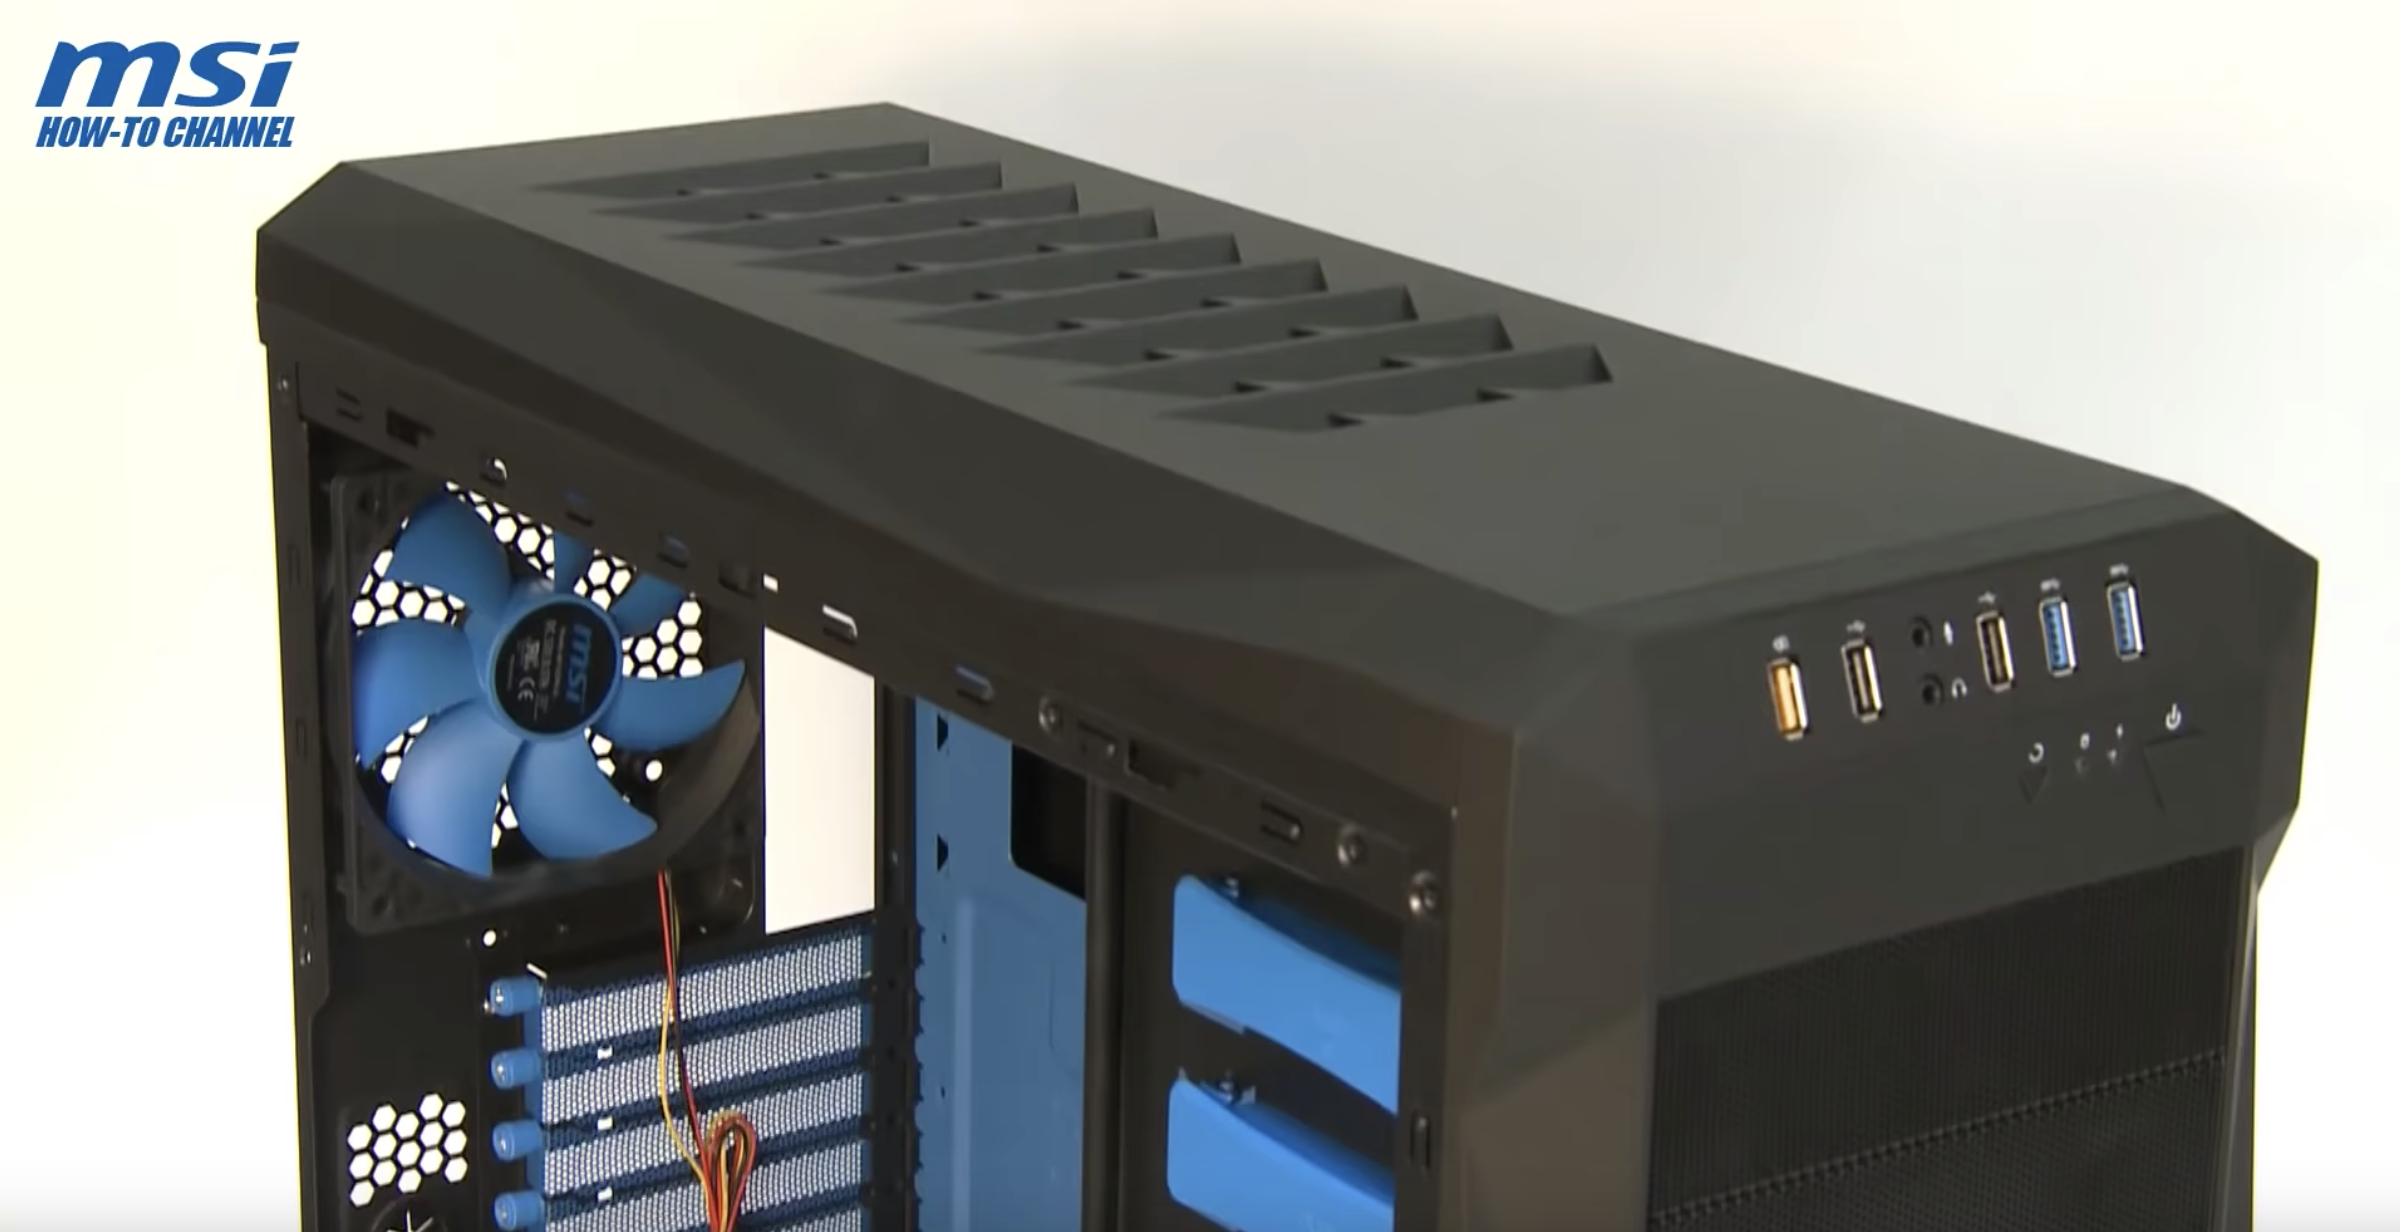 MSI -HOW-TO-install-front-panel-connectors-JFP1